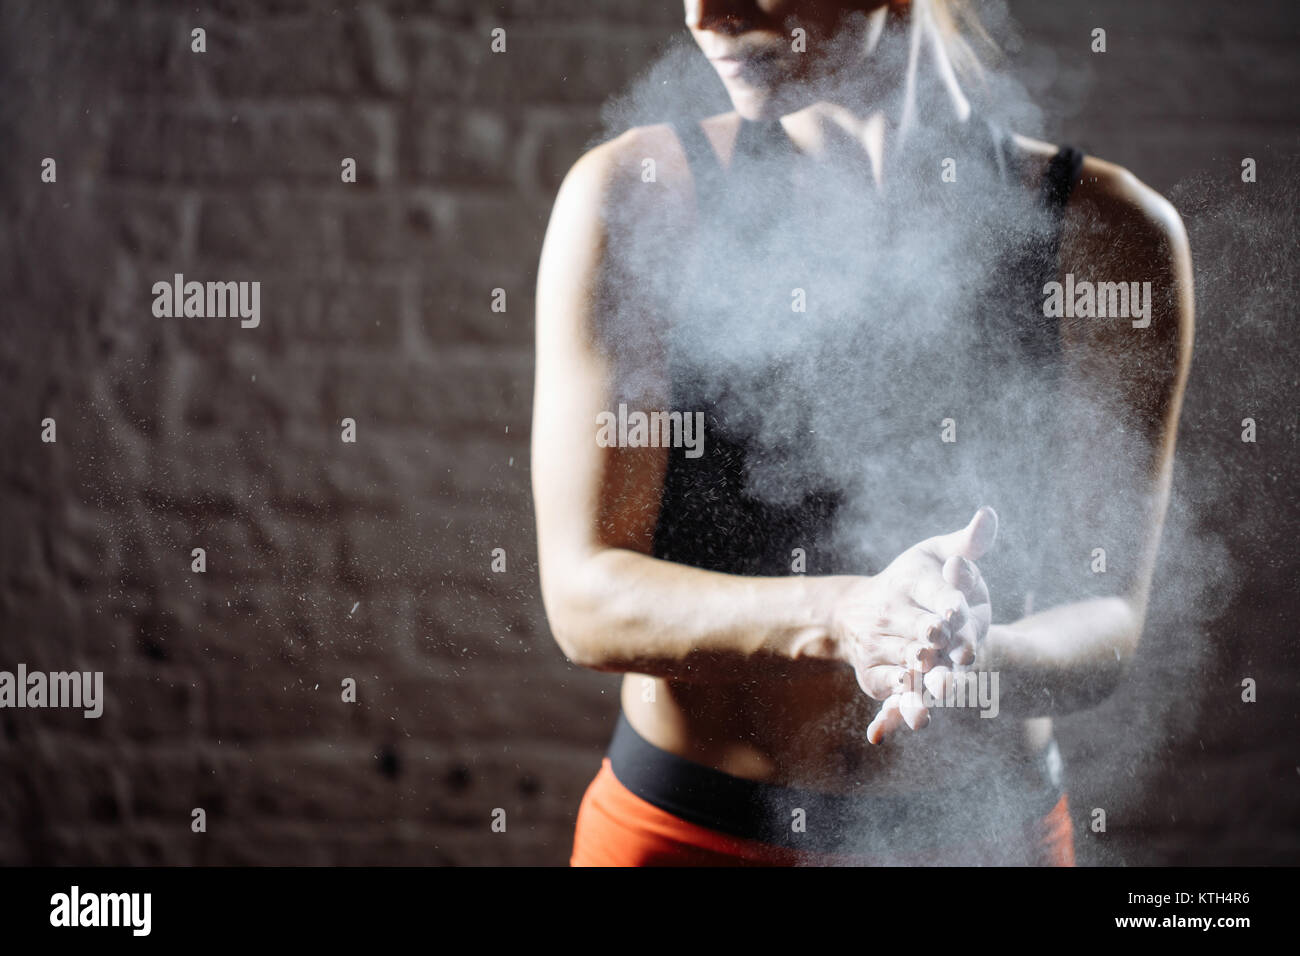 female athlete clapping hands with chalk powder before strength training - Stock Image